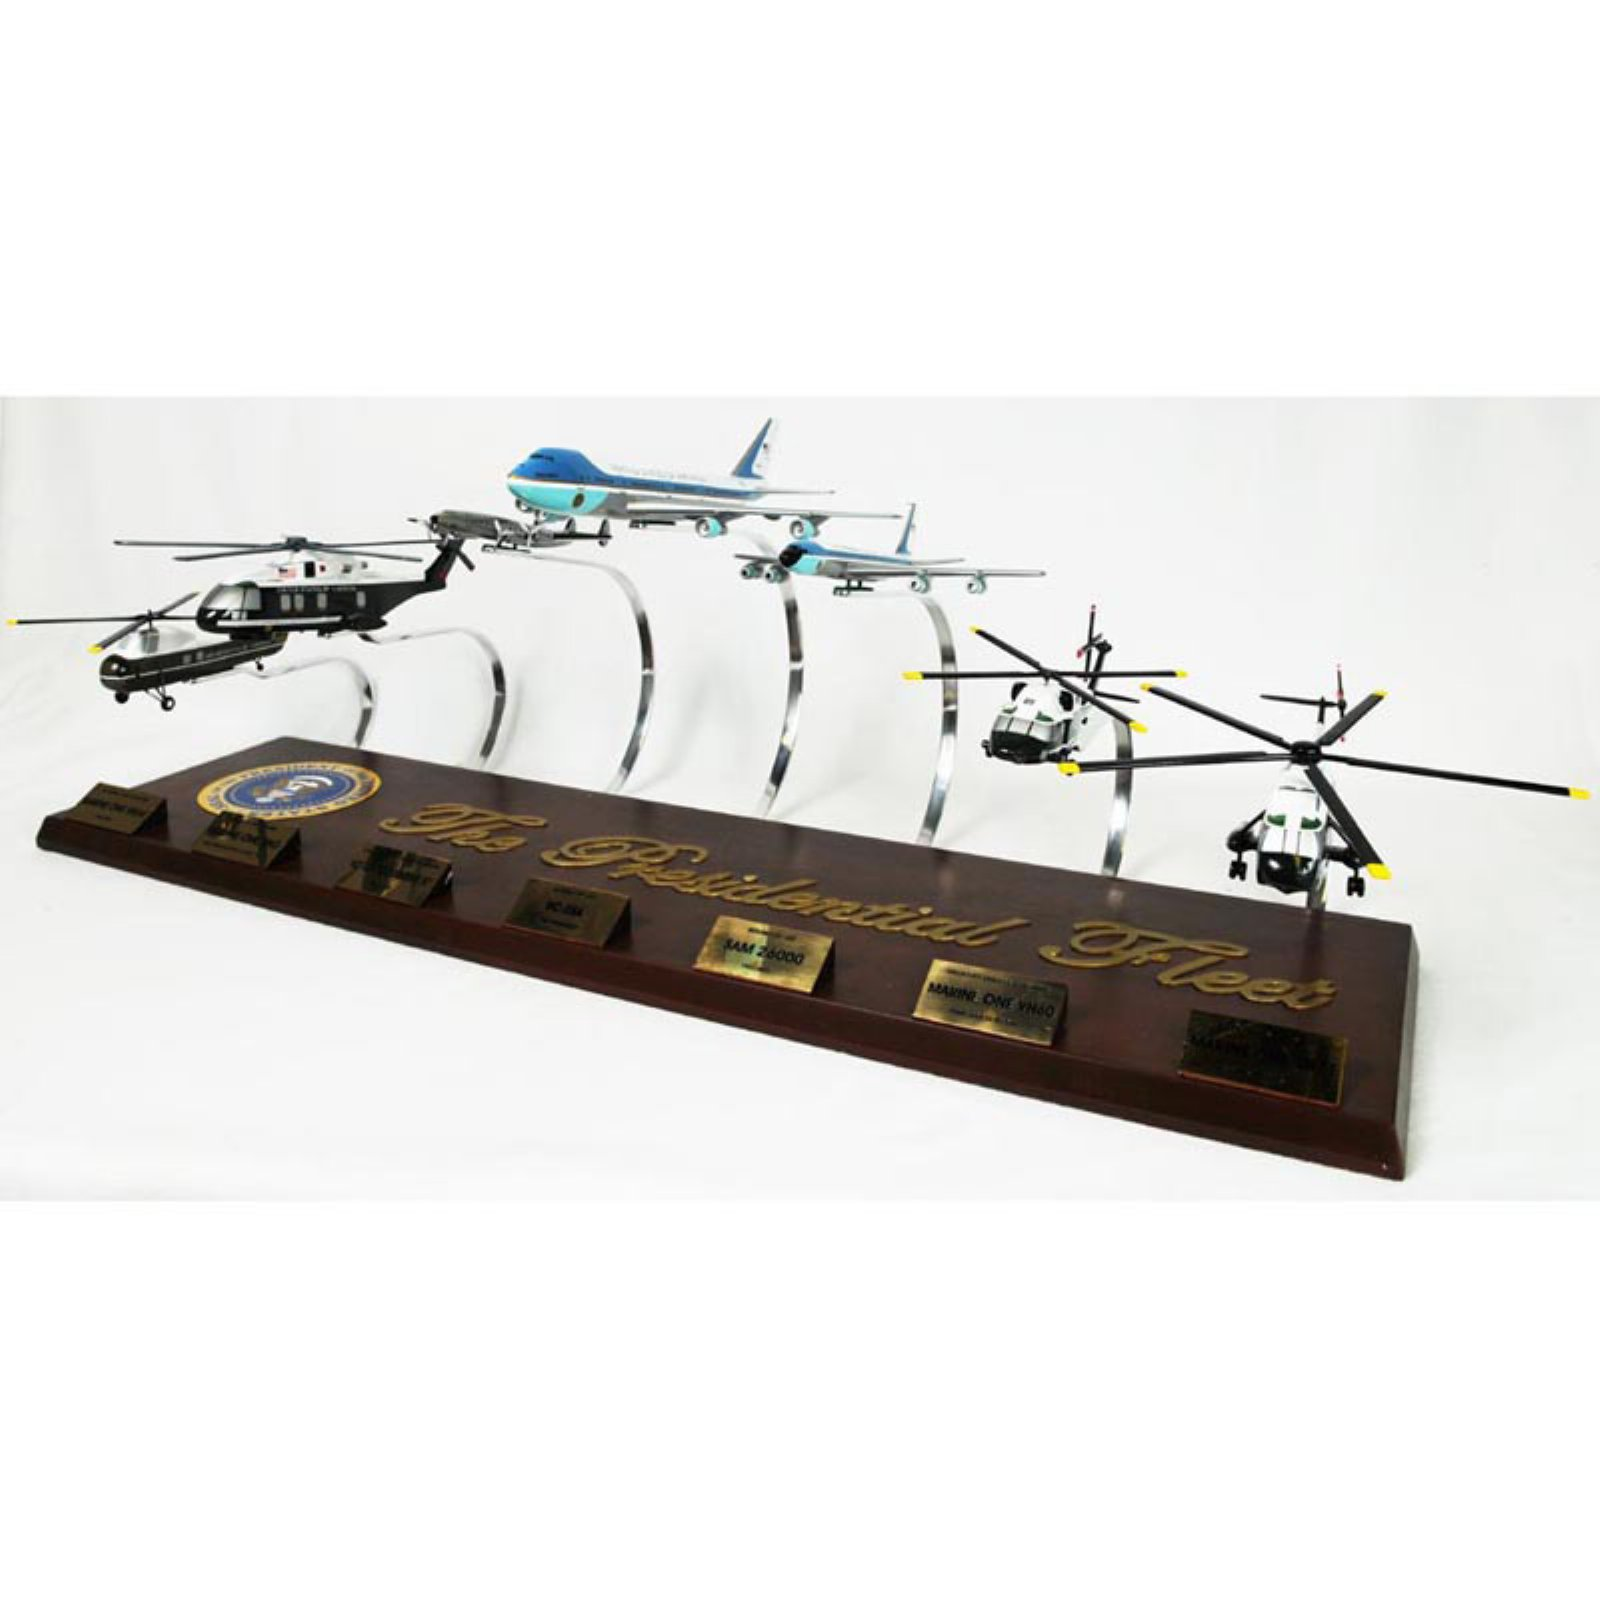 Daron Worldwide Presidential Collection Model Airplane by Toys and Models Corporation